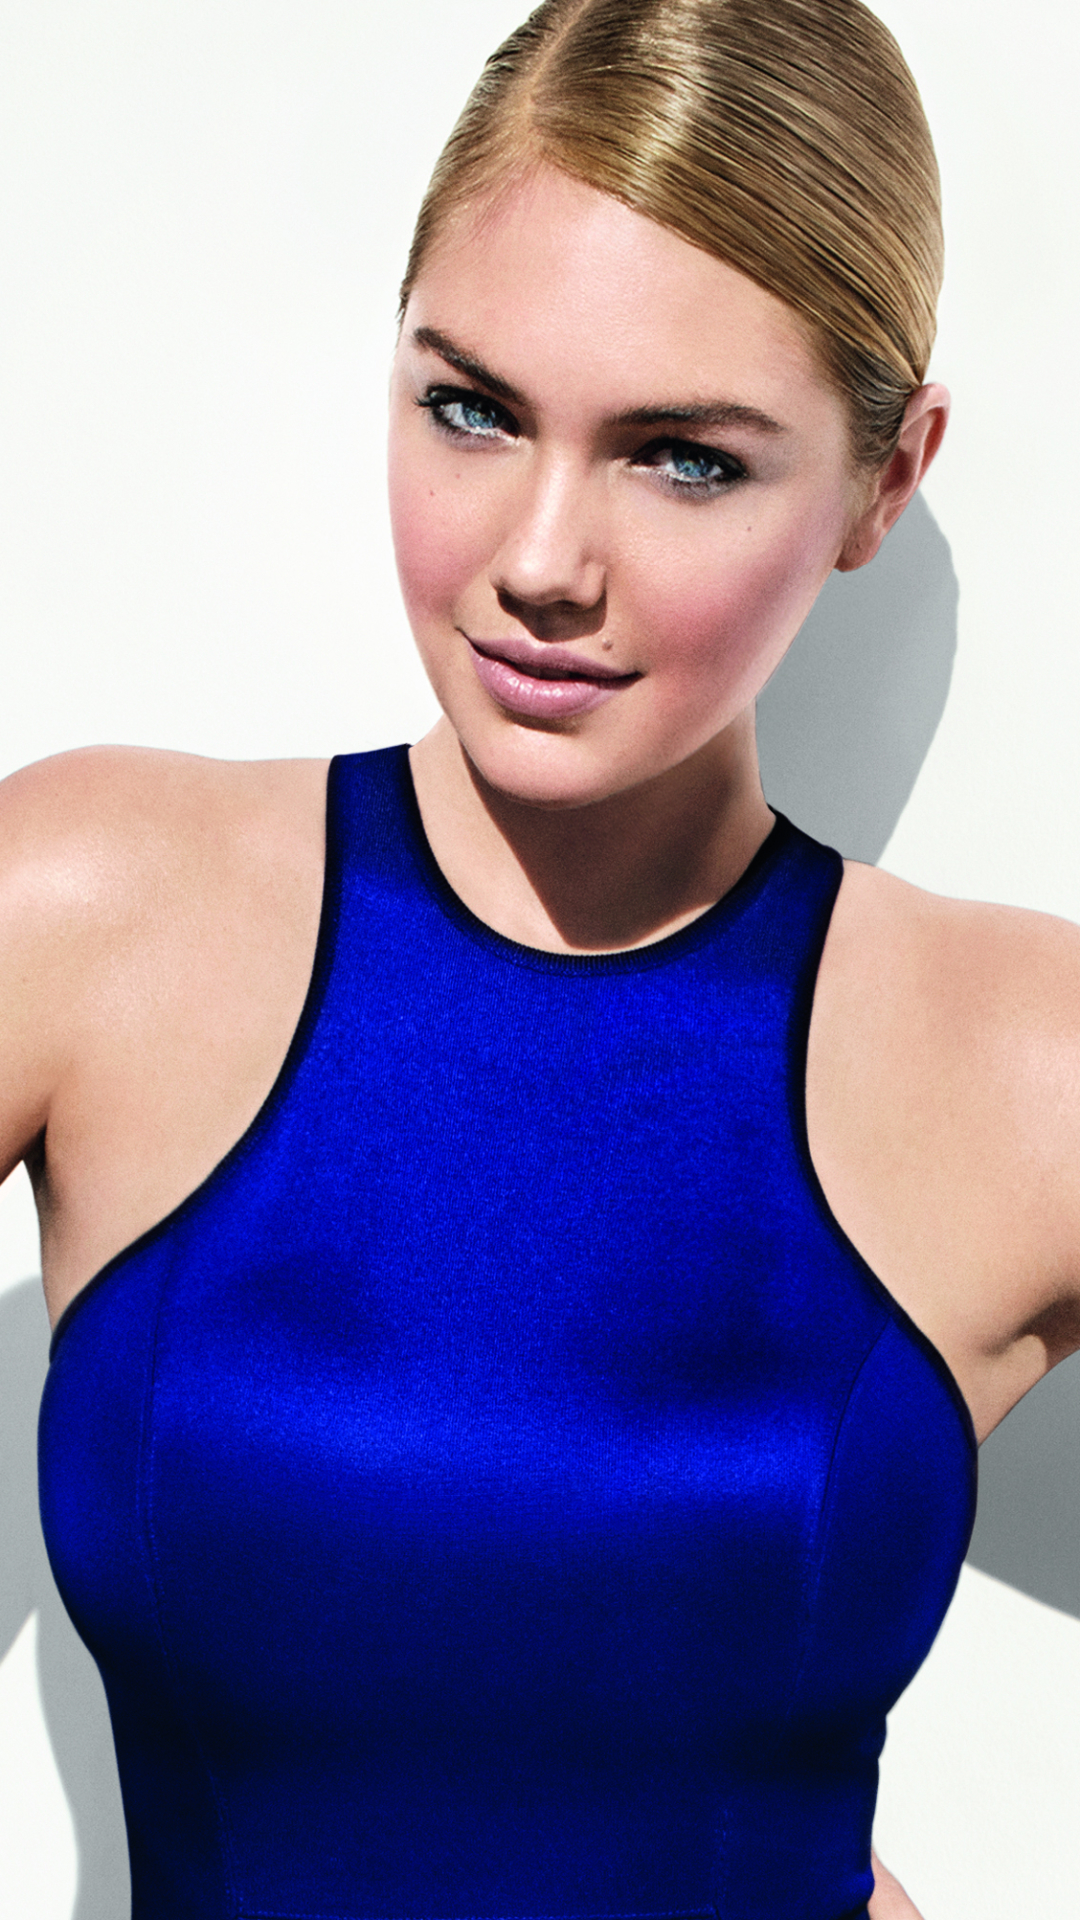 Celebritykate upton 1080x1920 wallpaper id 664395 mobile abyss celebrity kate upton 1080x1920 mobile wallpaper voltagebd Choice Image